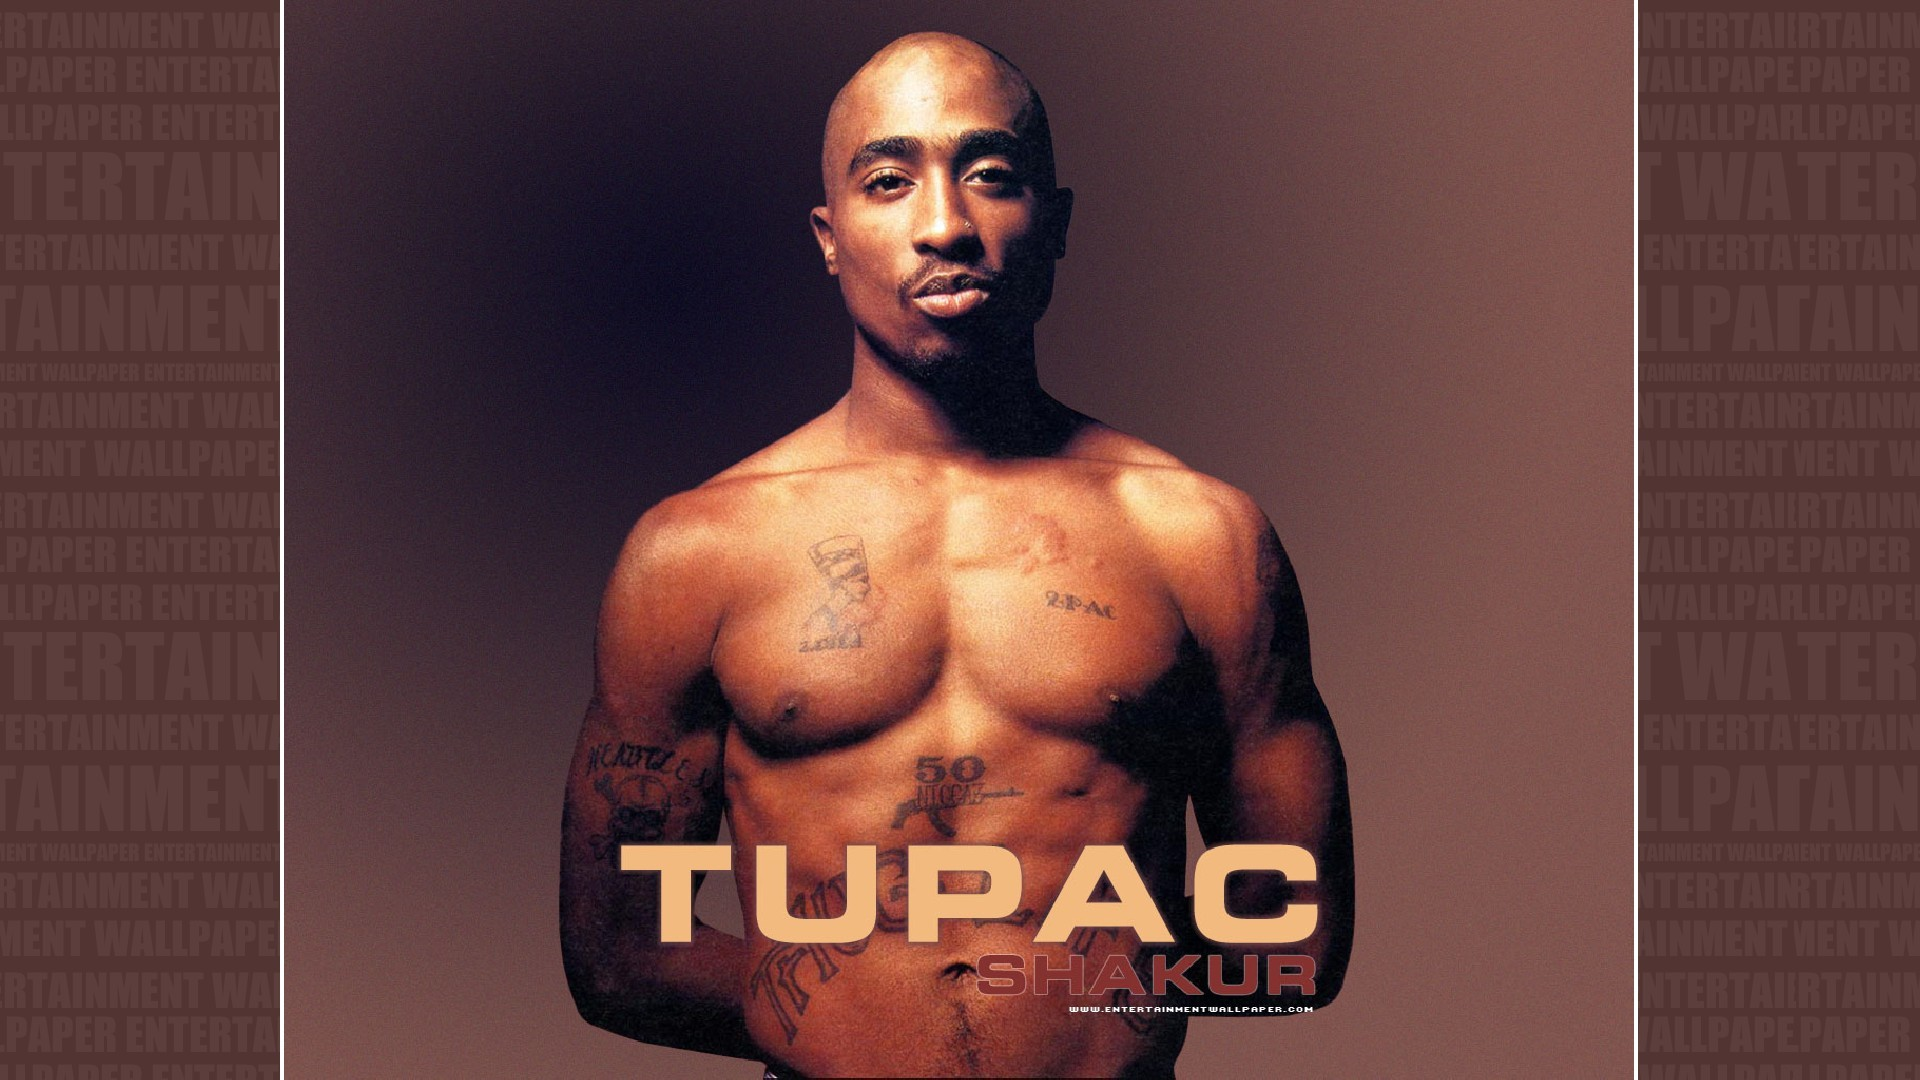 Tupac Shakur Wallpaper – #40007300 (1920×1080)